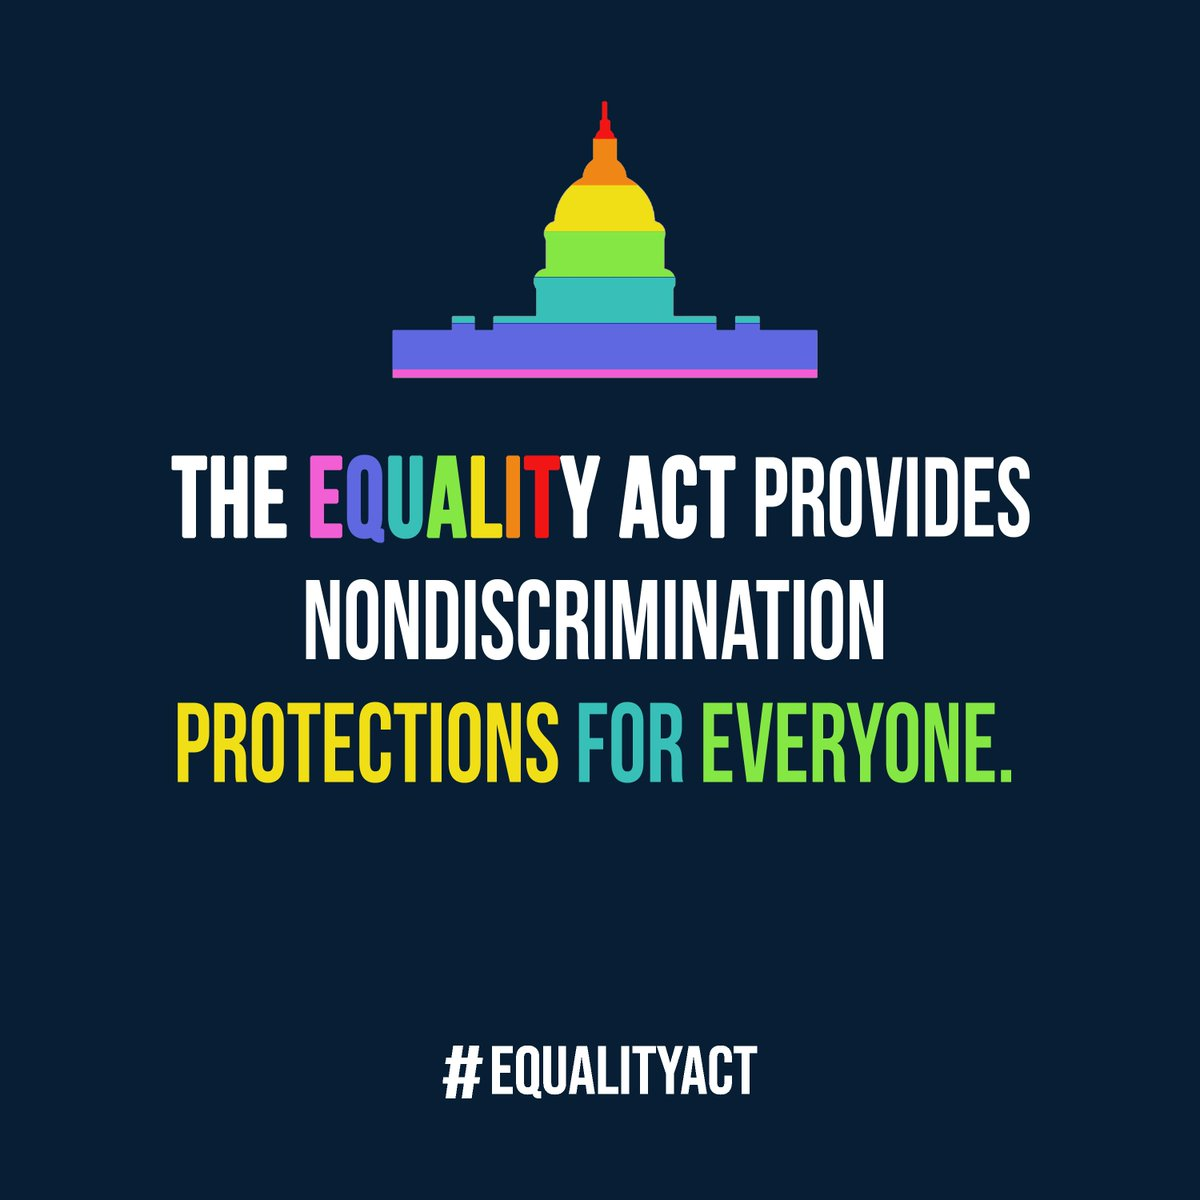 Today we passed the #EqualityAct to make sure every American has equal protection under the law. I'm proud of my colleague @davidcicilline for his leadership on this legislation, and I join my #LGBTQ friends across Pennsylvania in celebrating this historic moment.